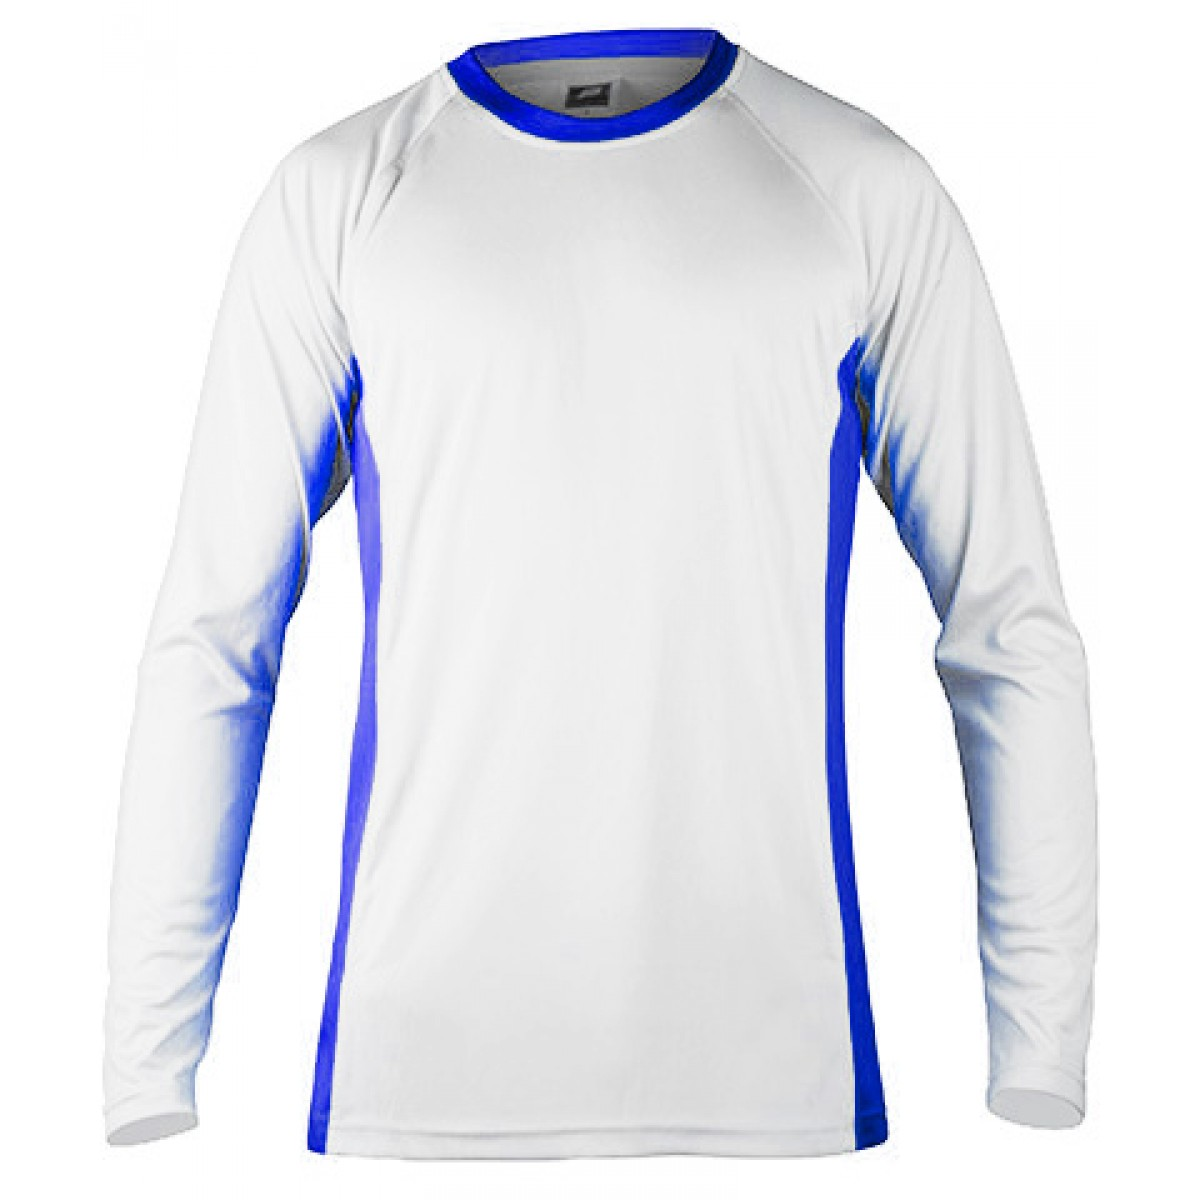 Long Sleeves Performance With Side Insert-White/Blue-YM